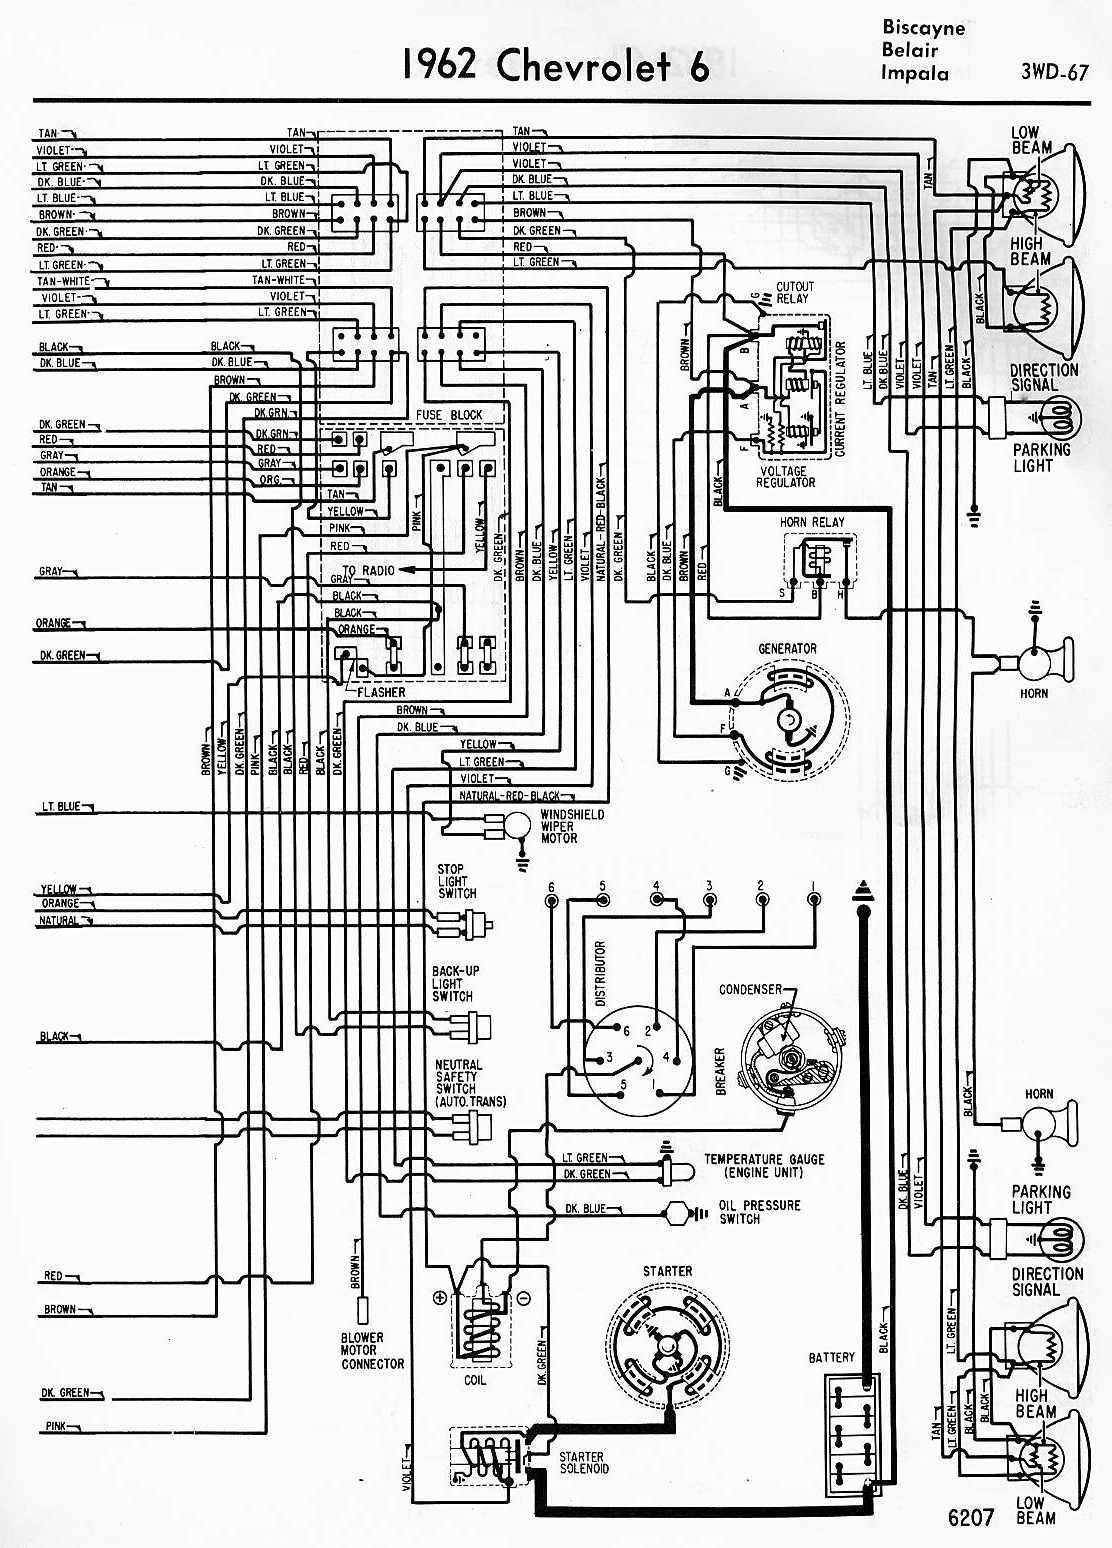 1964 jeep cj5 wiring diagram Images Gallery